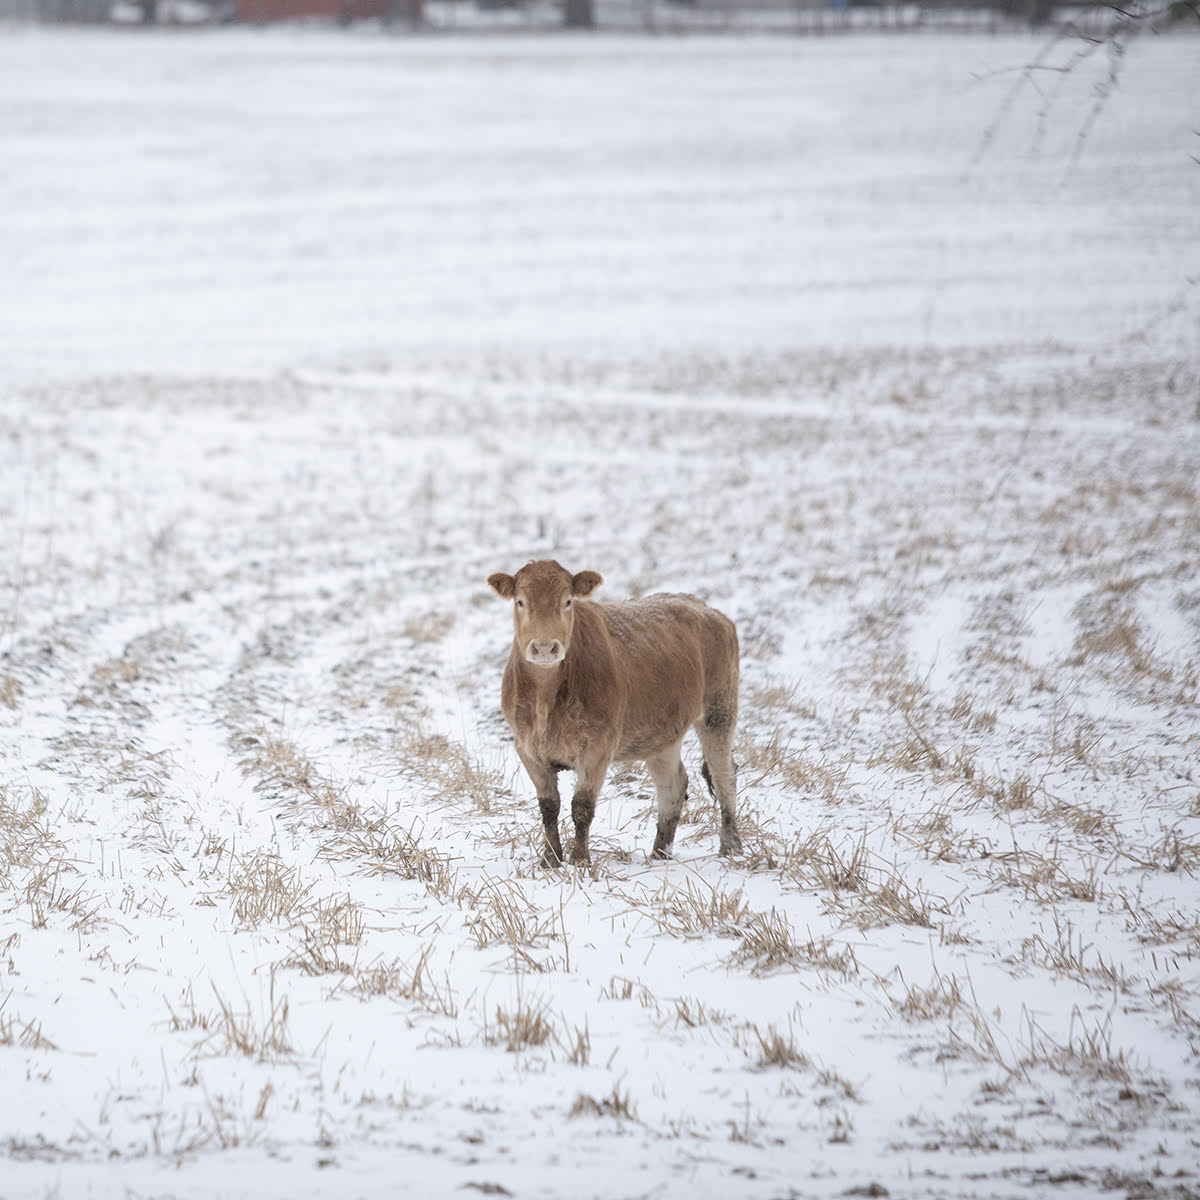 cow in snow.jpg